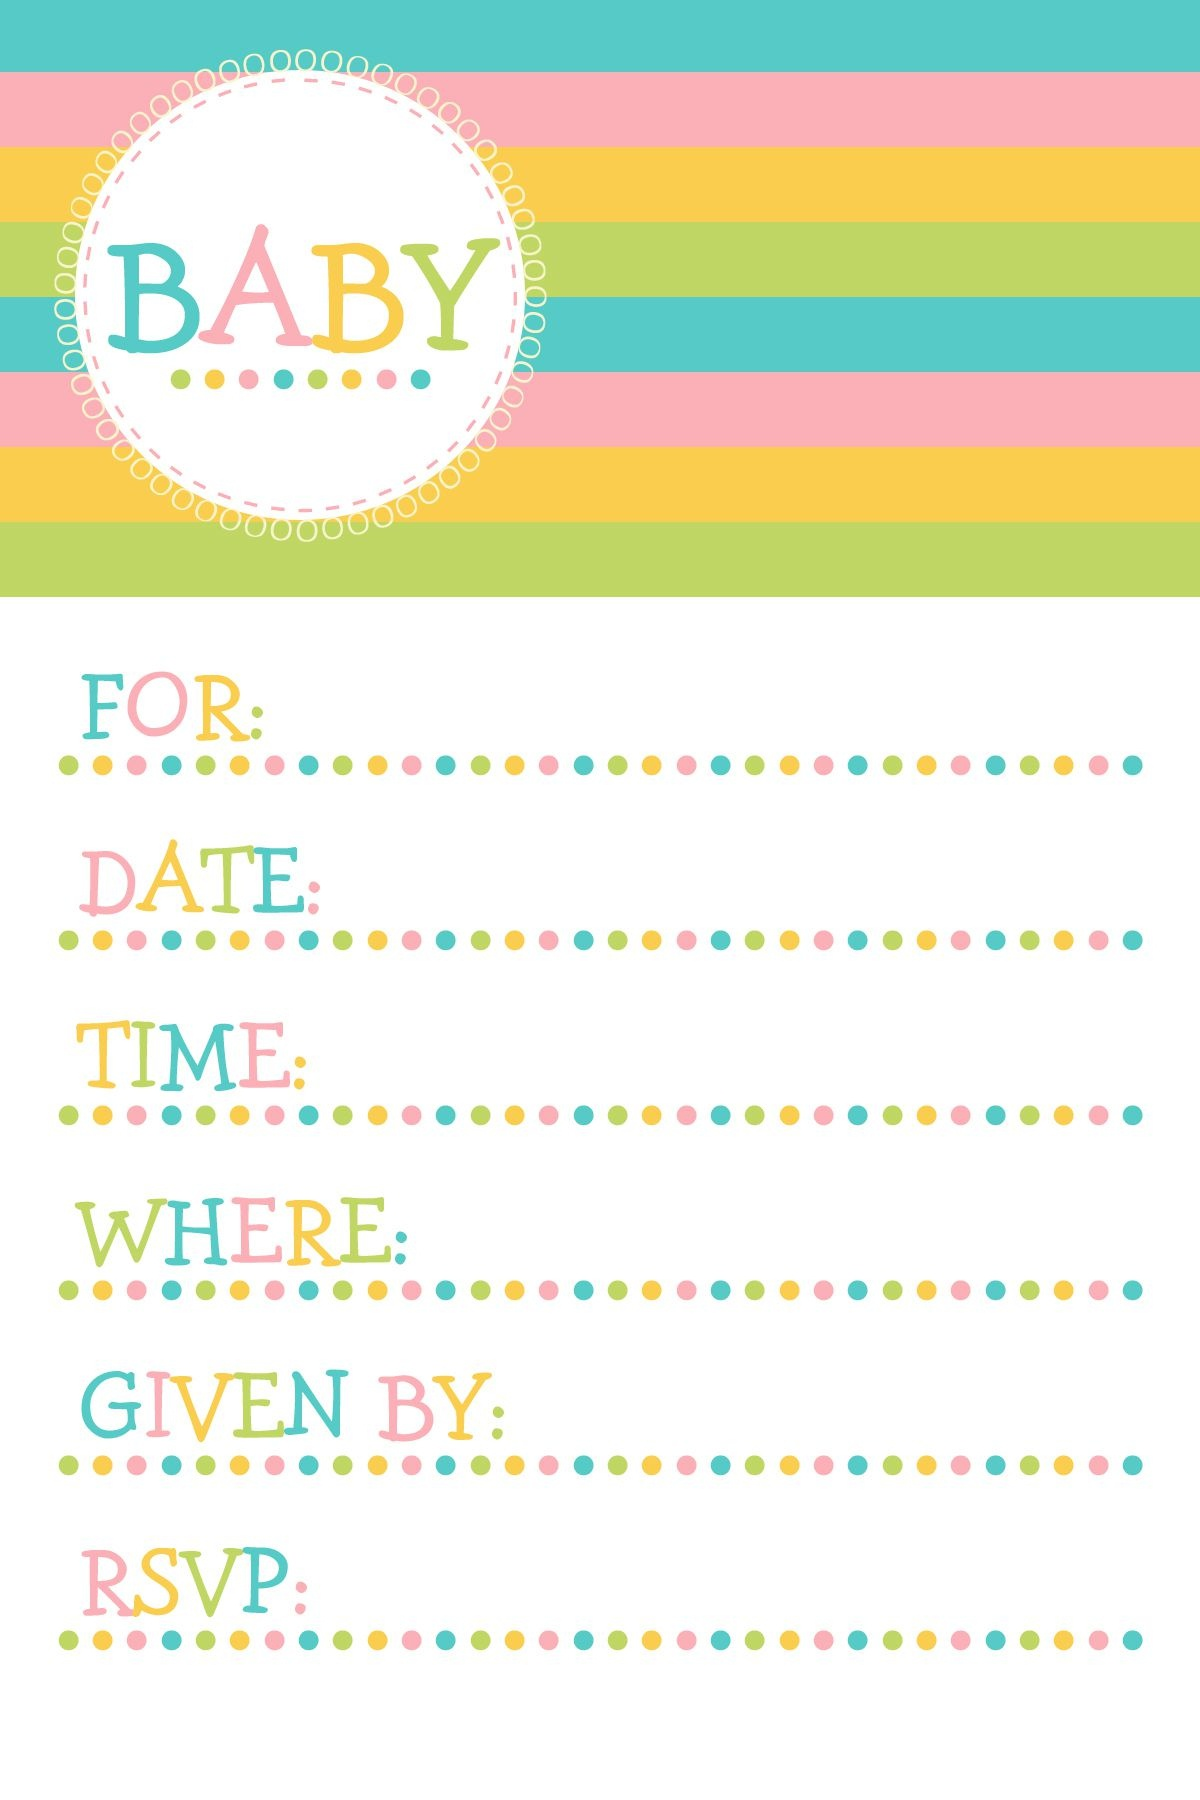 25 Adorable Free Printable Baby Shower Invitations - Free Printable Baby Sprinkle Invitations